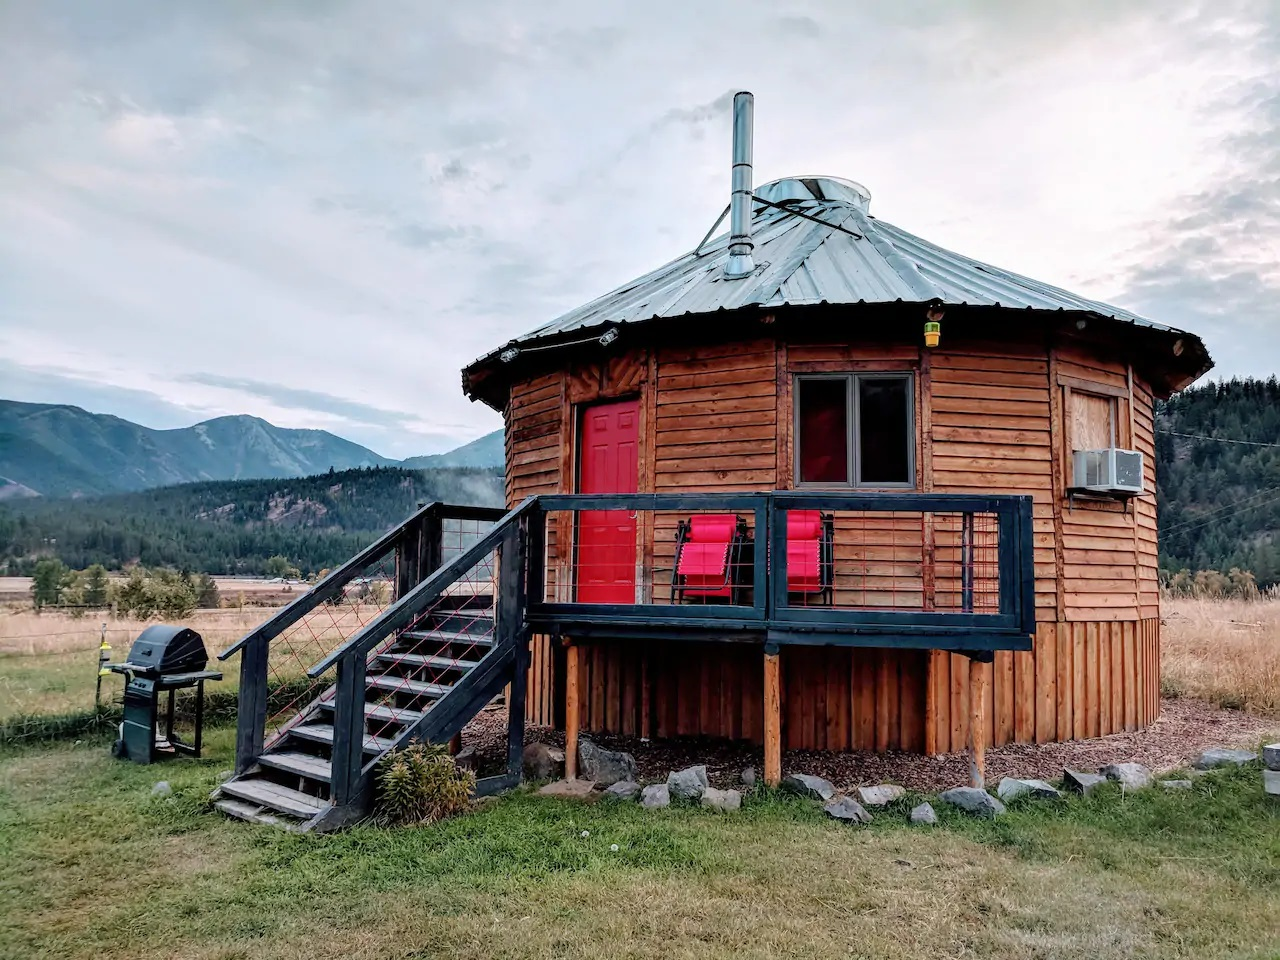 Photo of the outside of a yurt Airbnb.